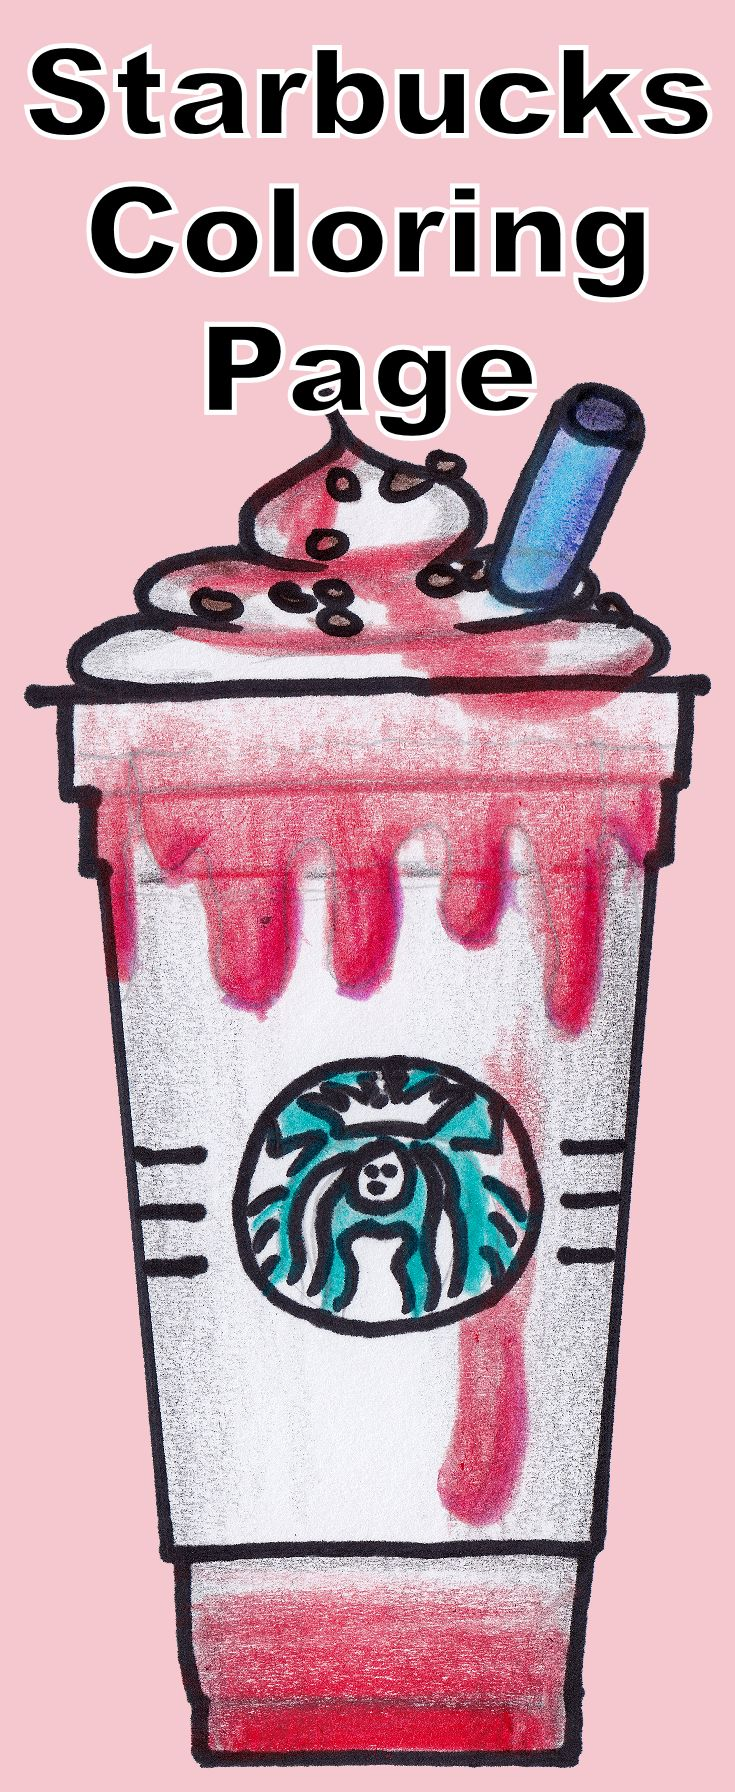 Free Coloring Page Of A Starbucks Frappuccino Includes A Drawing